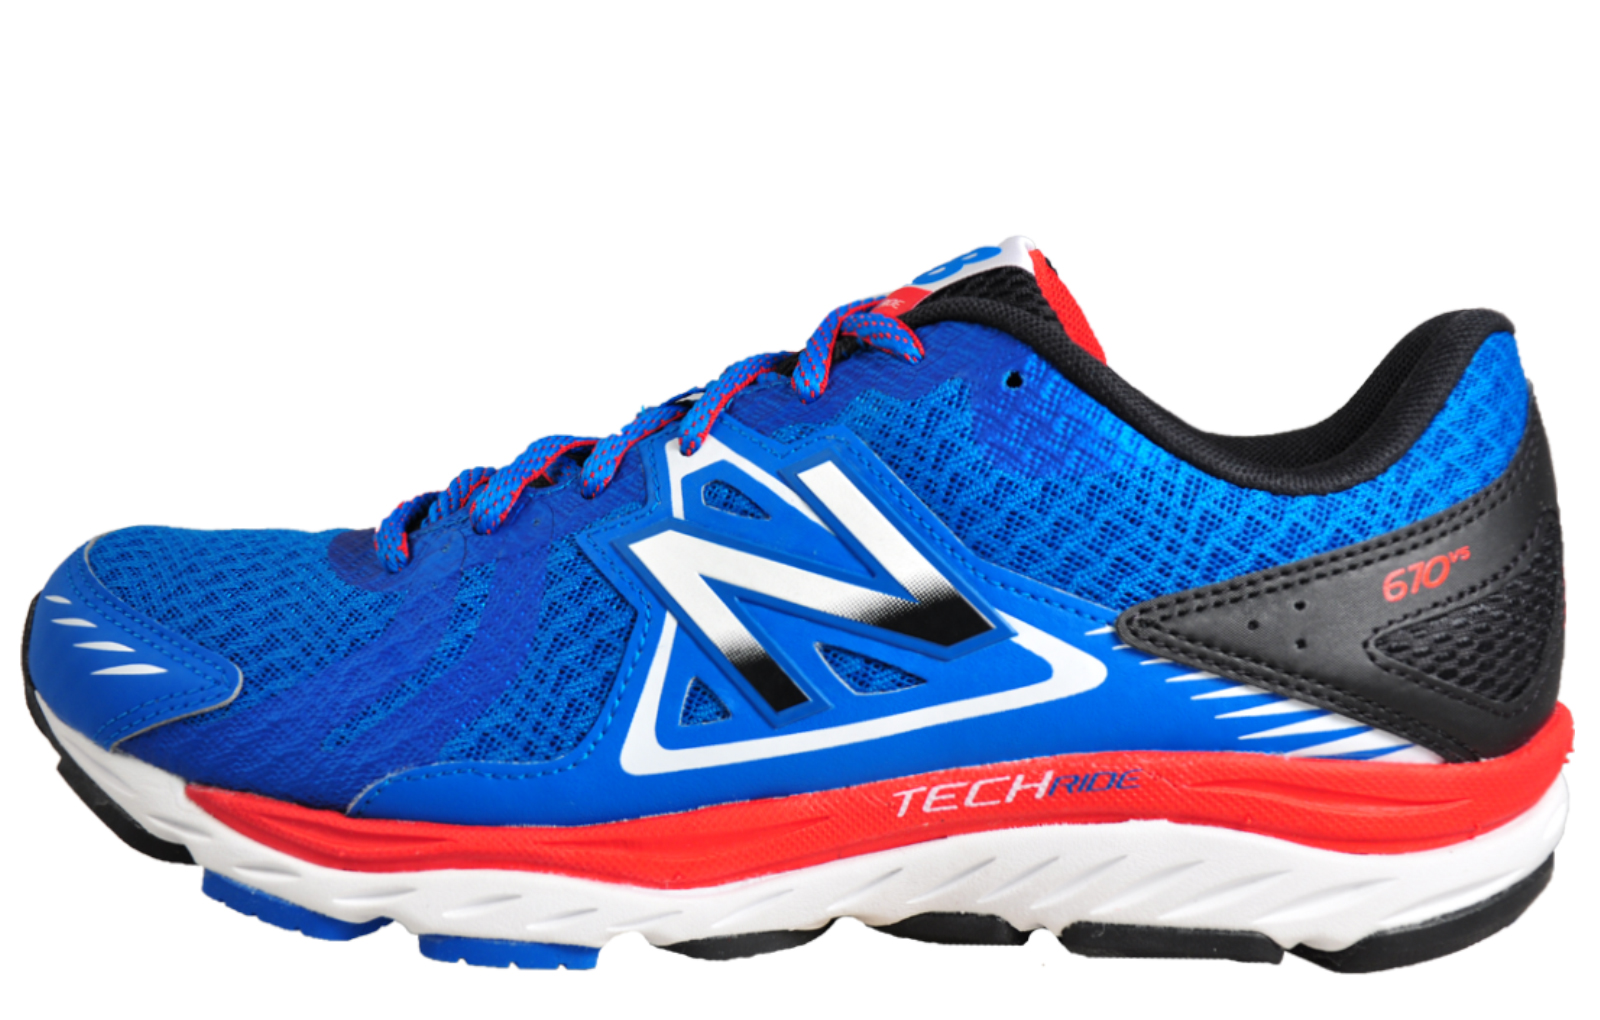 New Balance 670 v5 Mens - NB176768